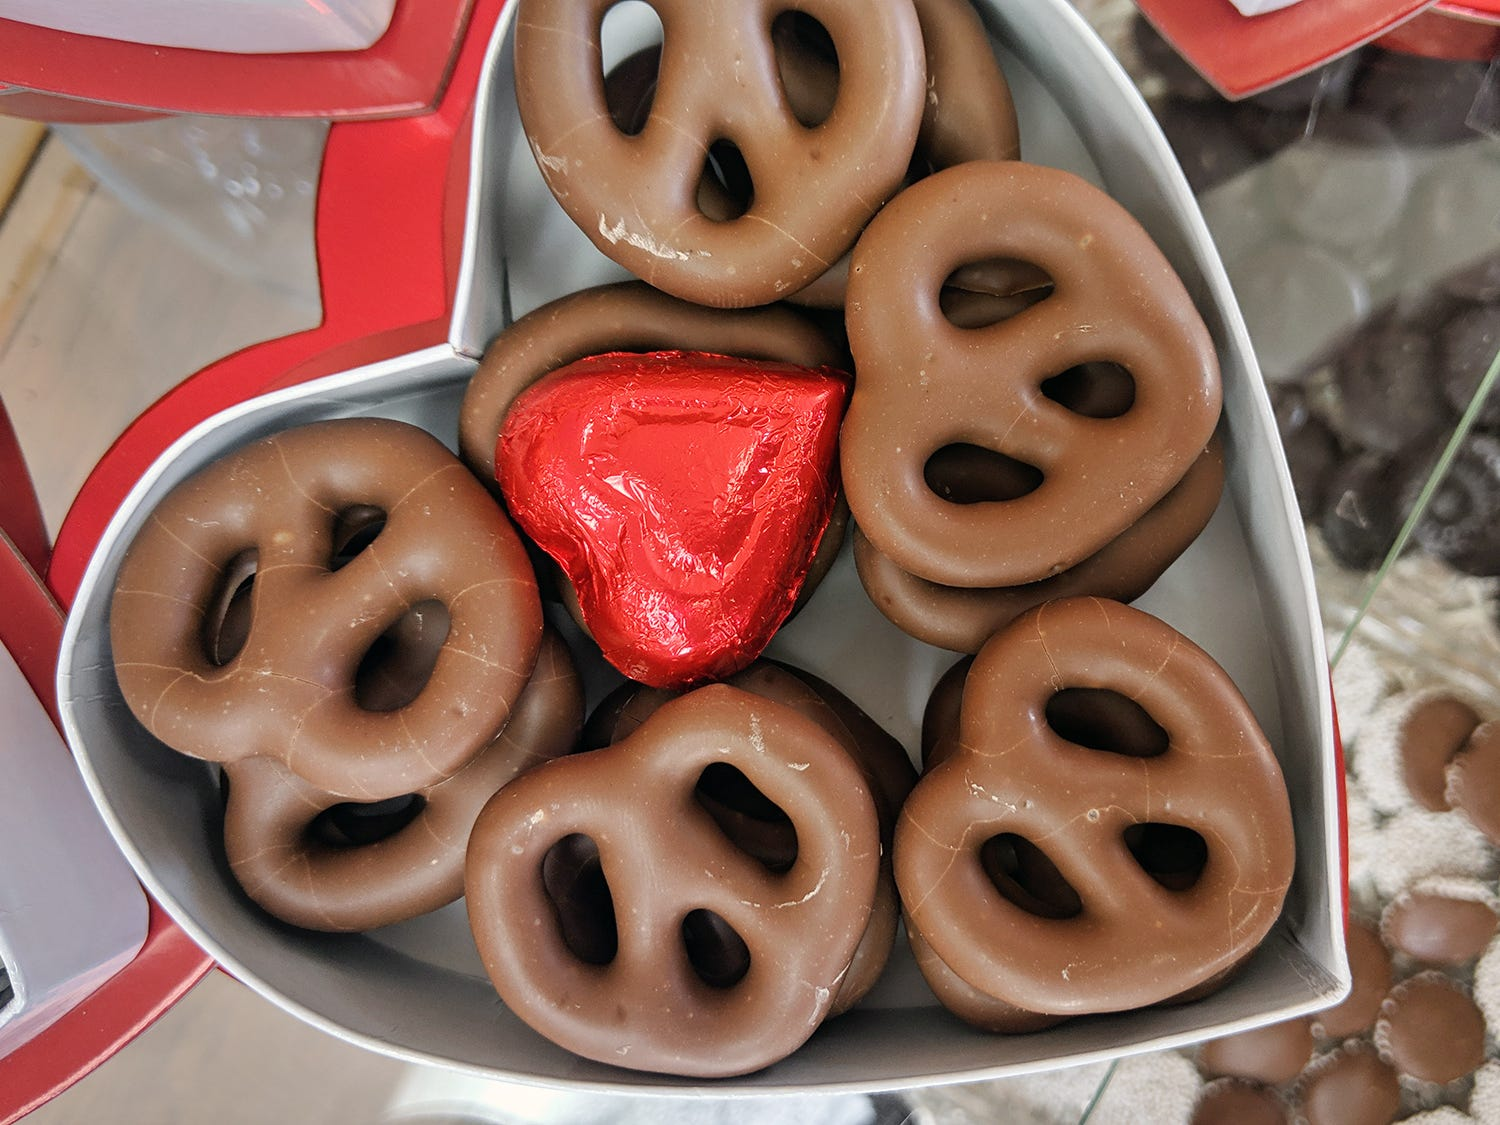 Sturgis pretzels dipped in chocolate are packed in Valentine's Day boxes at Fitzkee's Candies Inc., 2352 S. Queen St. in York Township.